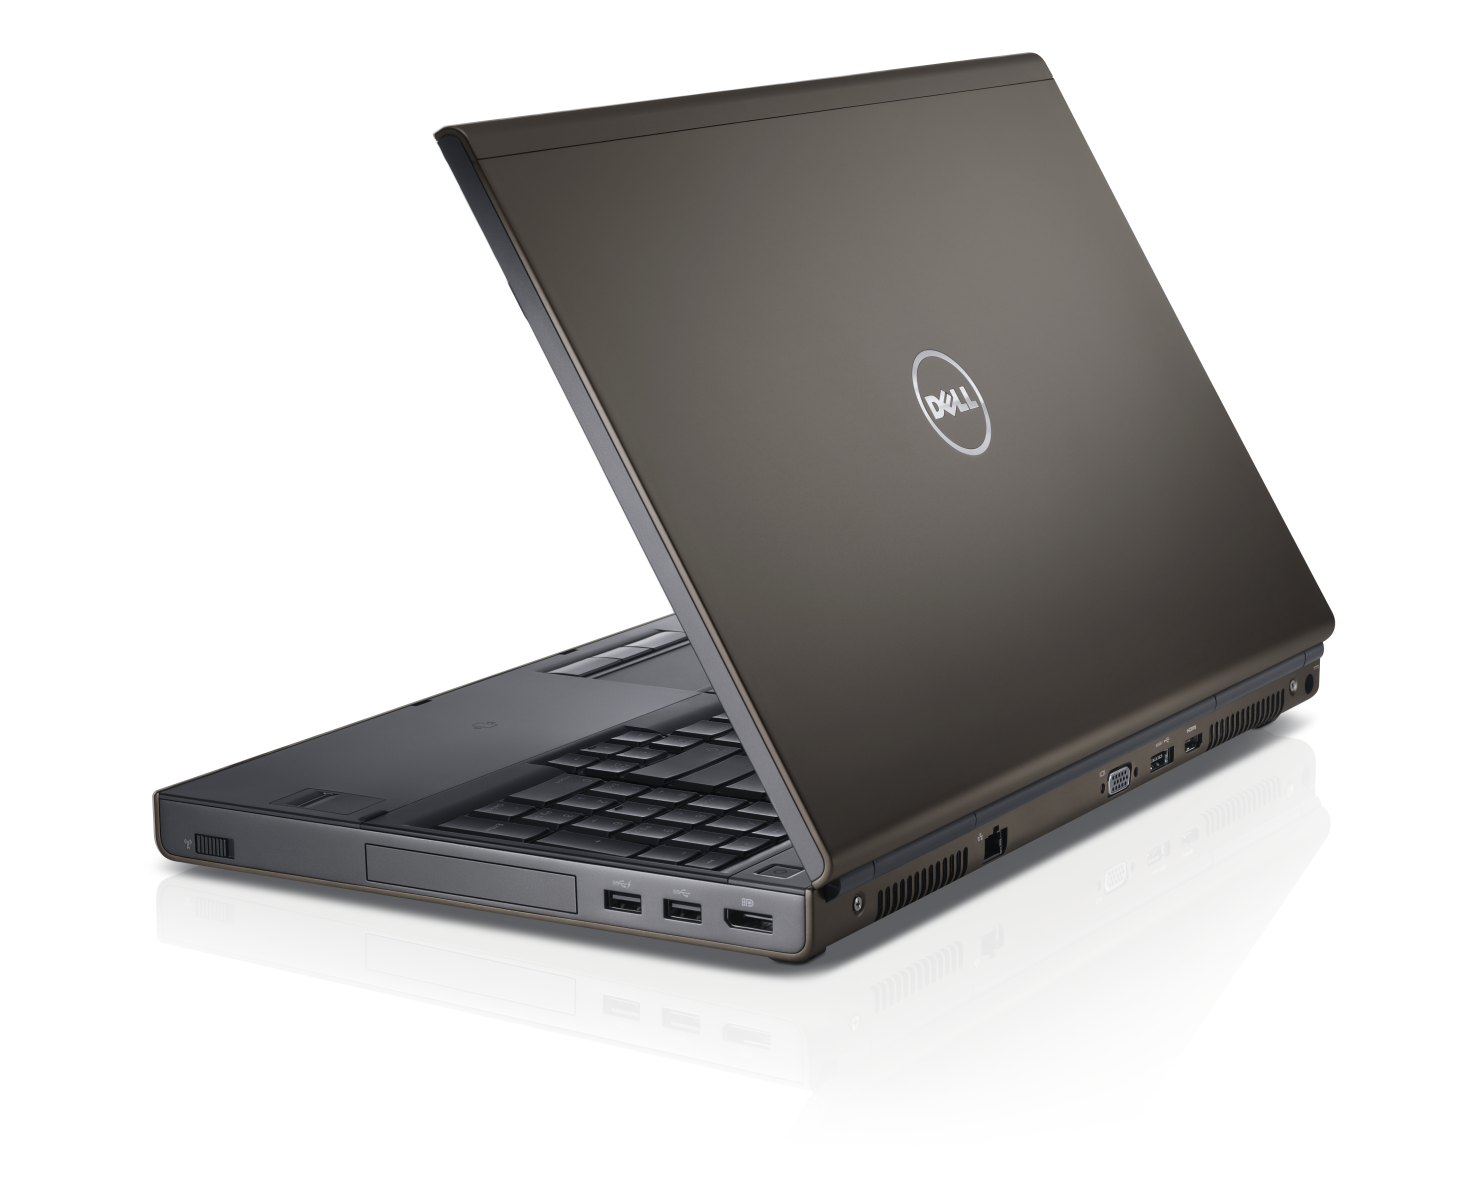 dell announces the precision m4800 and m6800 mobile workstations news. Black Bedroom Furniture Sets. Home Design Ideas